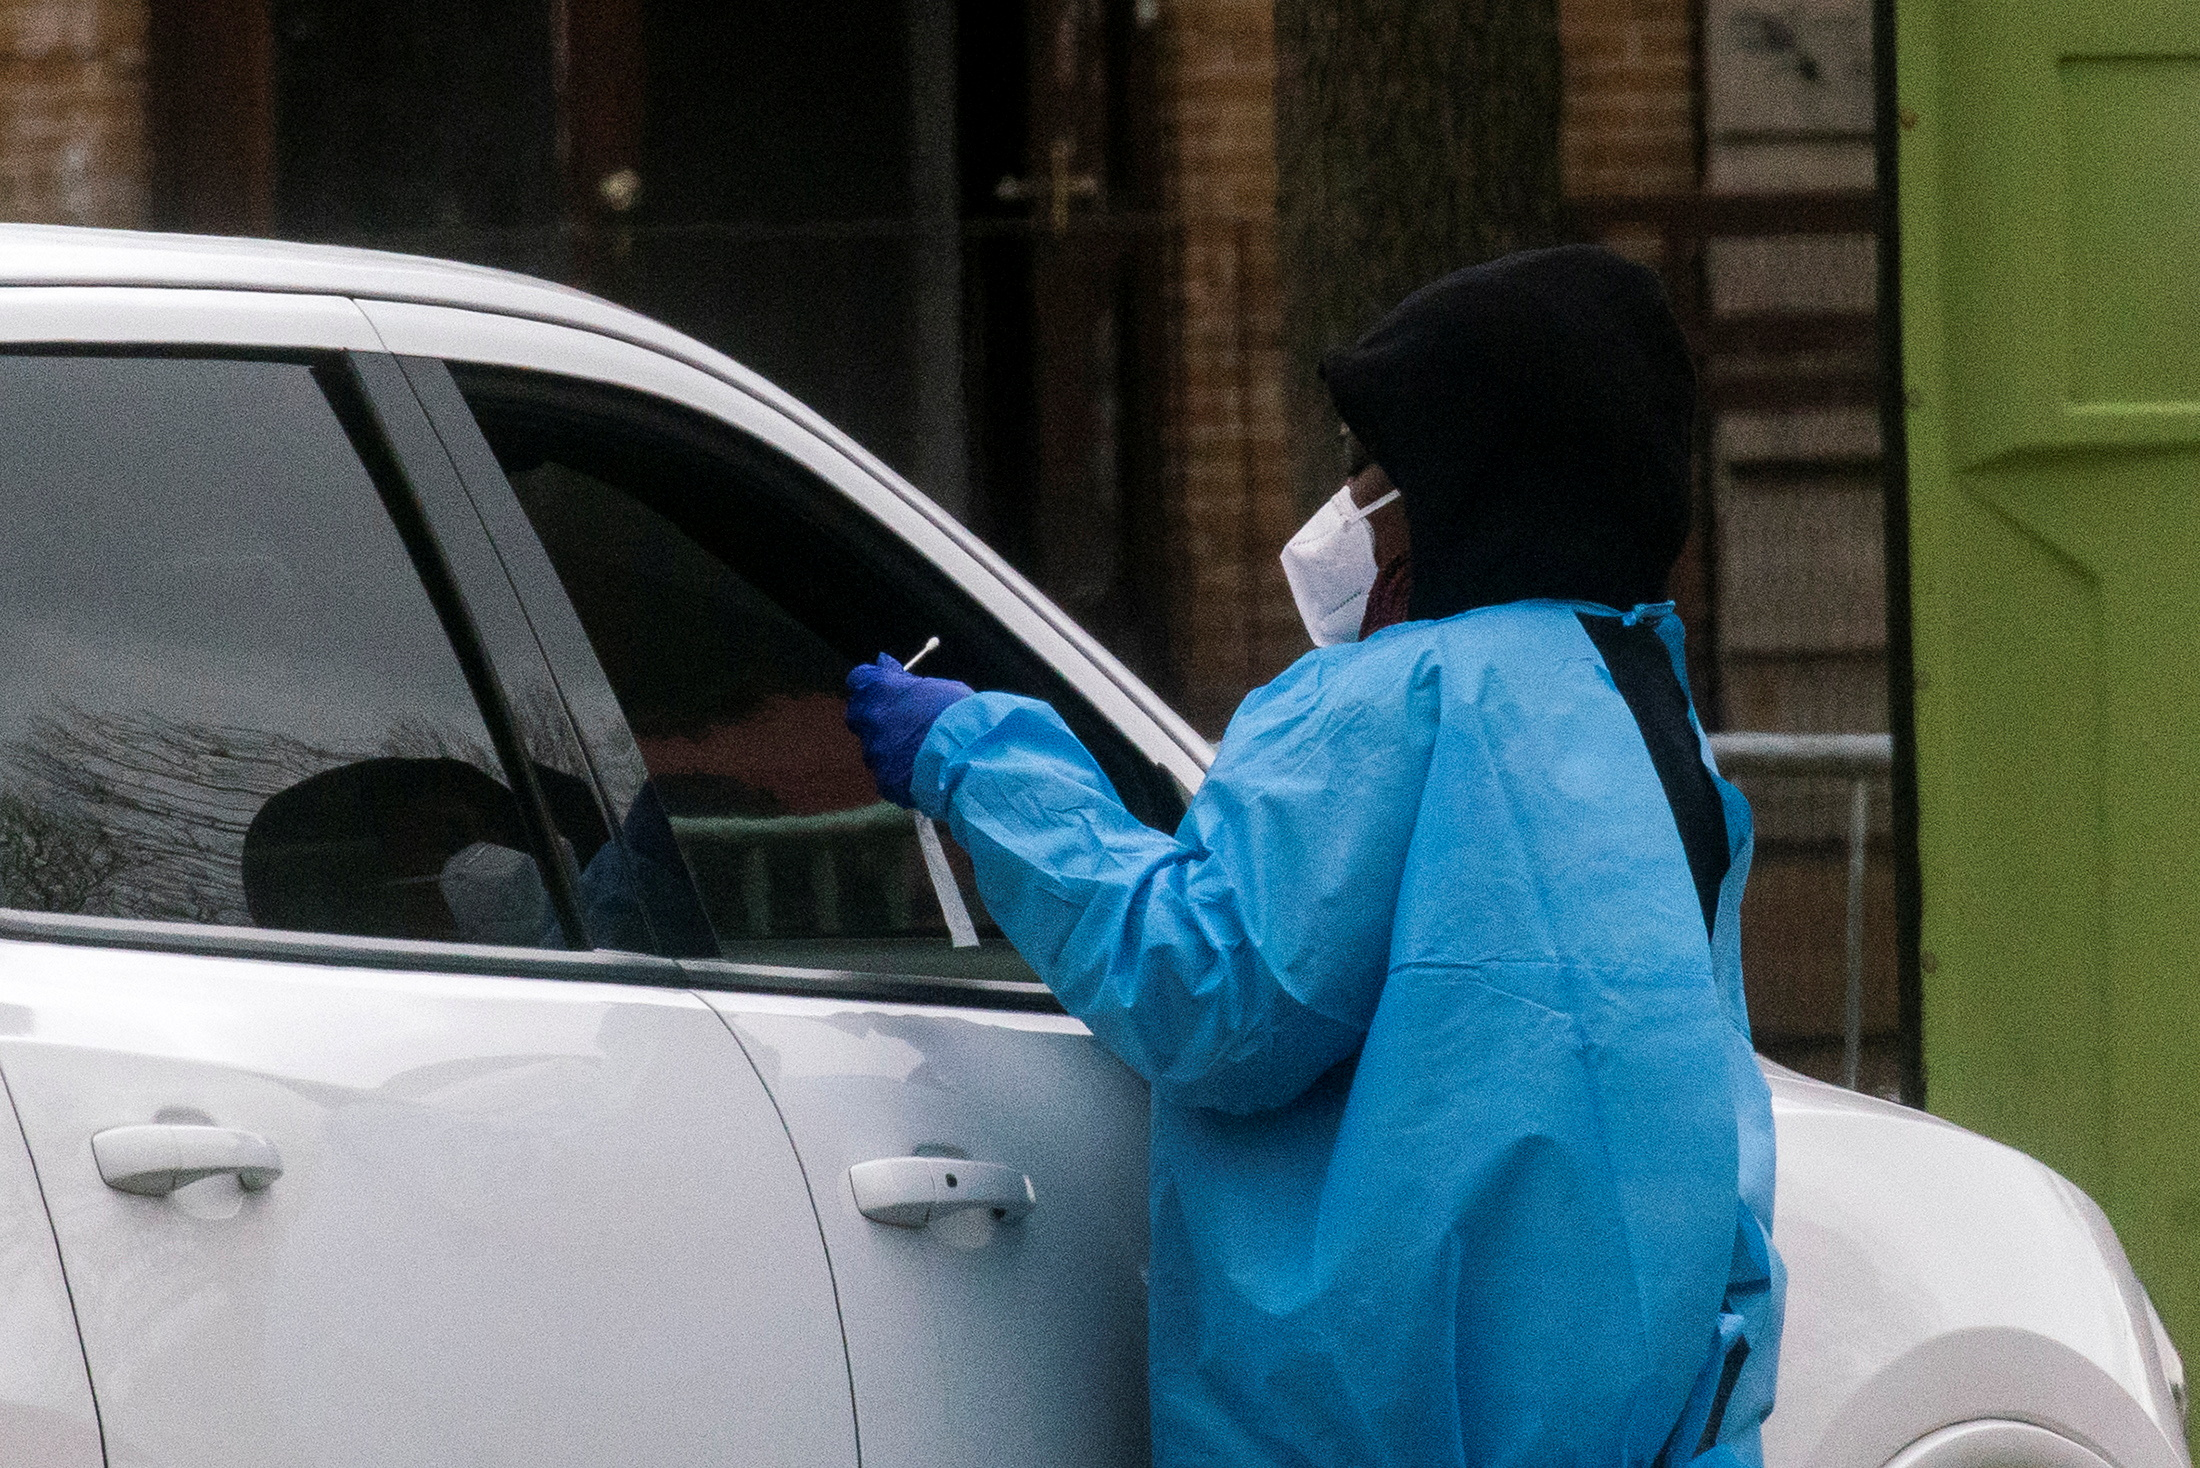 A health worker does a coronavirus disease (COVID-19) test as people wait at a drive-through COVID-19 testing center in a local street, in Newark, New Jersey, U.S., April 2, 2021. REUTERS/Eduardo Munoz